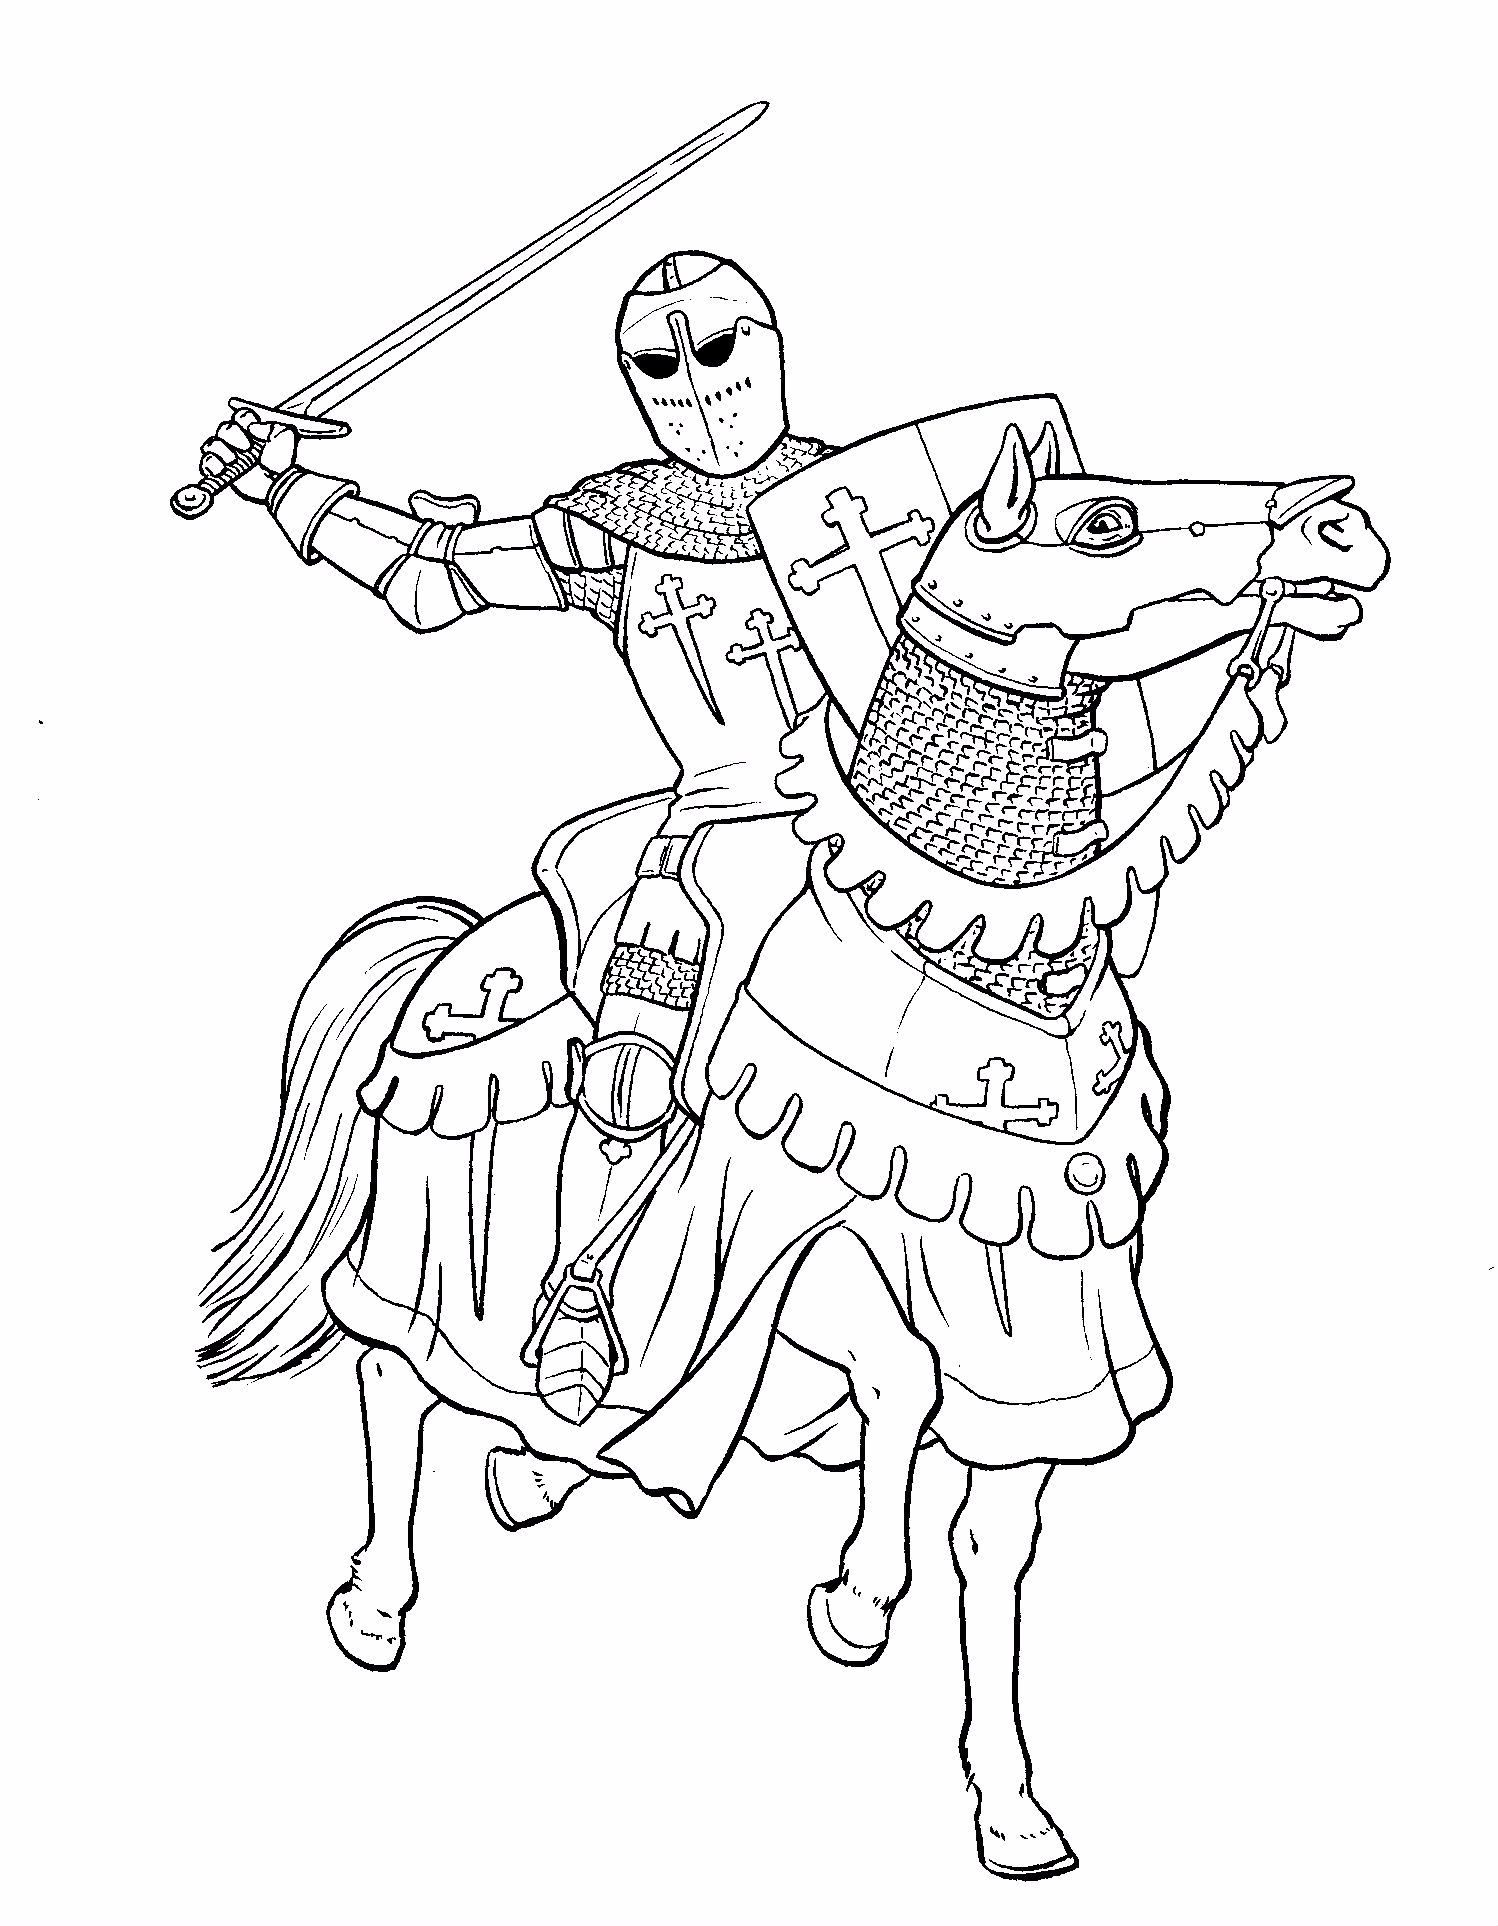 Online Coloring Pages Coloring Pages For Kids Coloring  Online